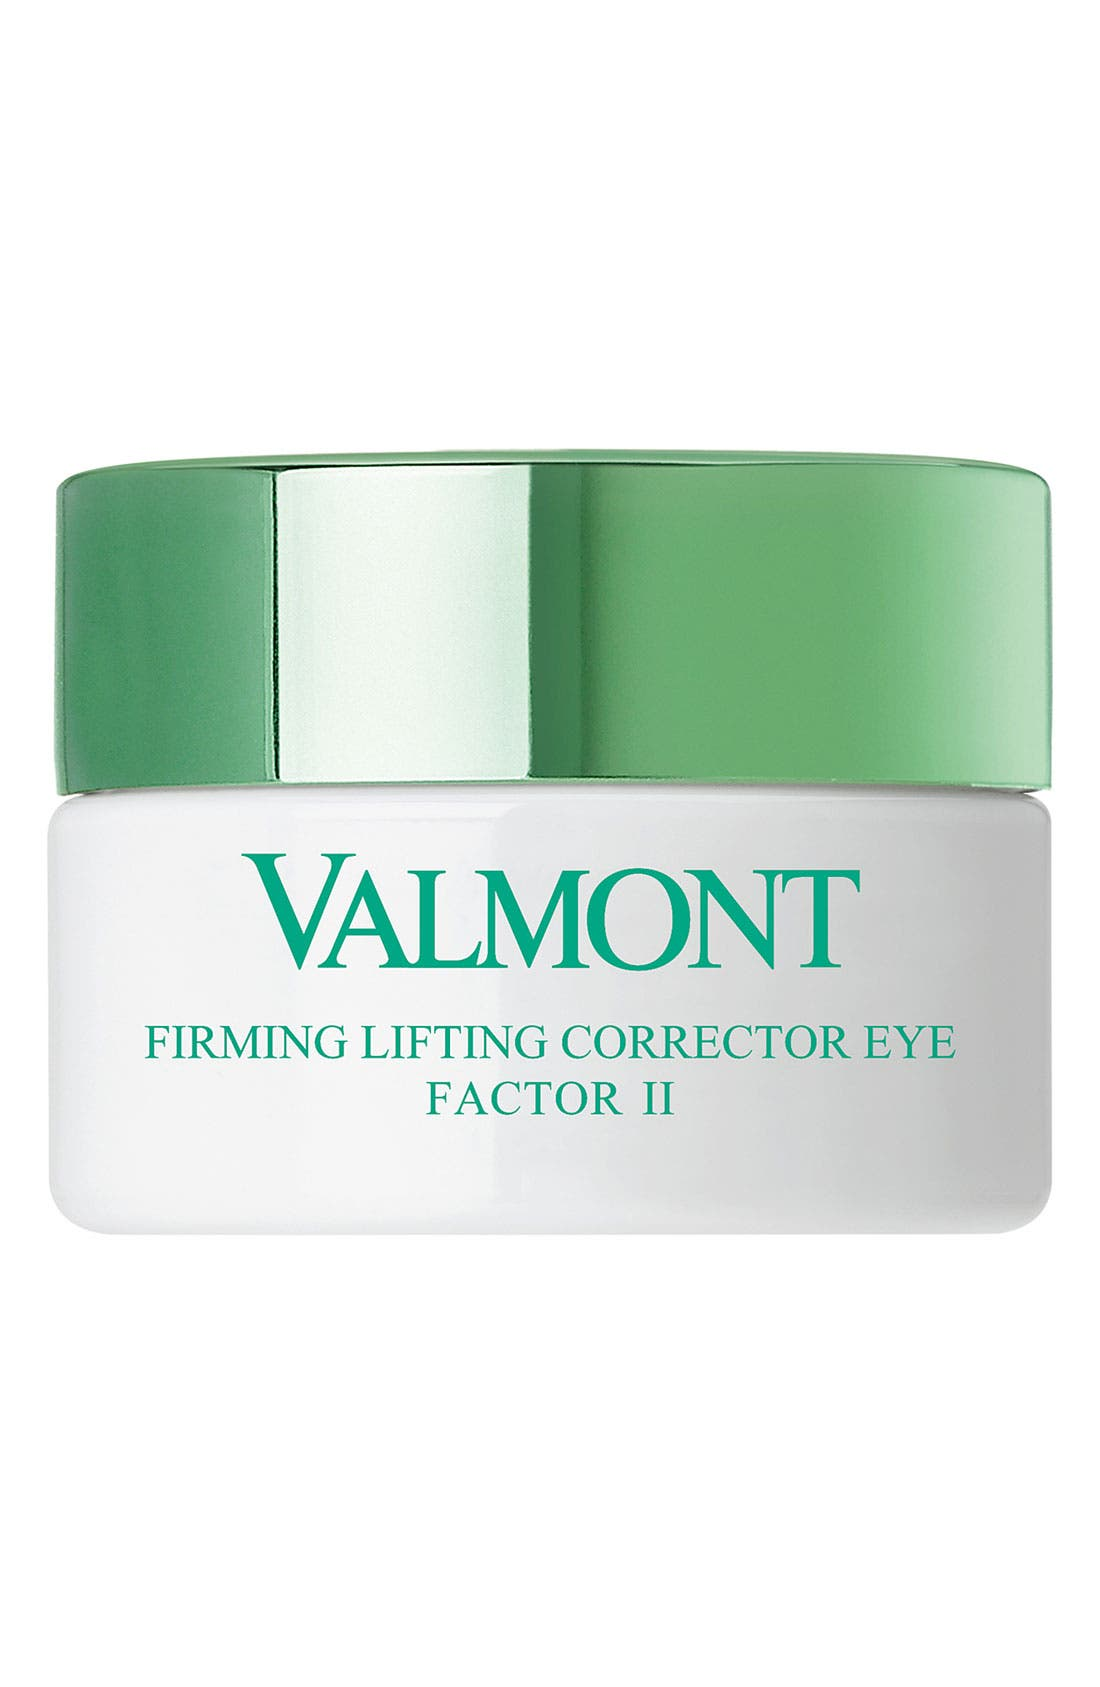 Valmont 'Firming Lifting Corrector Eye Factor II' Treatment